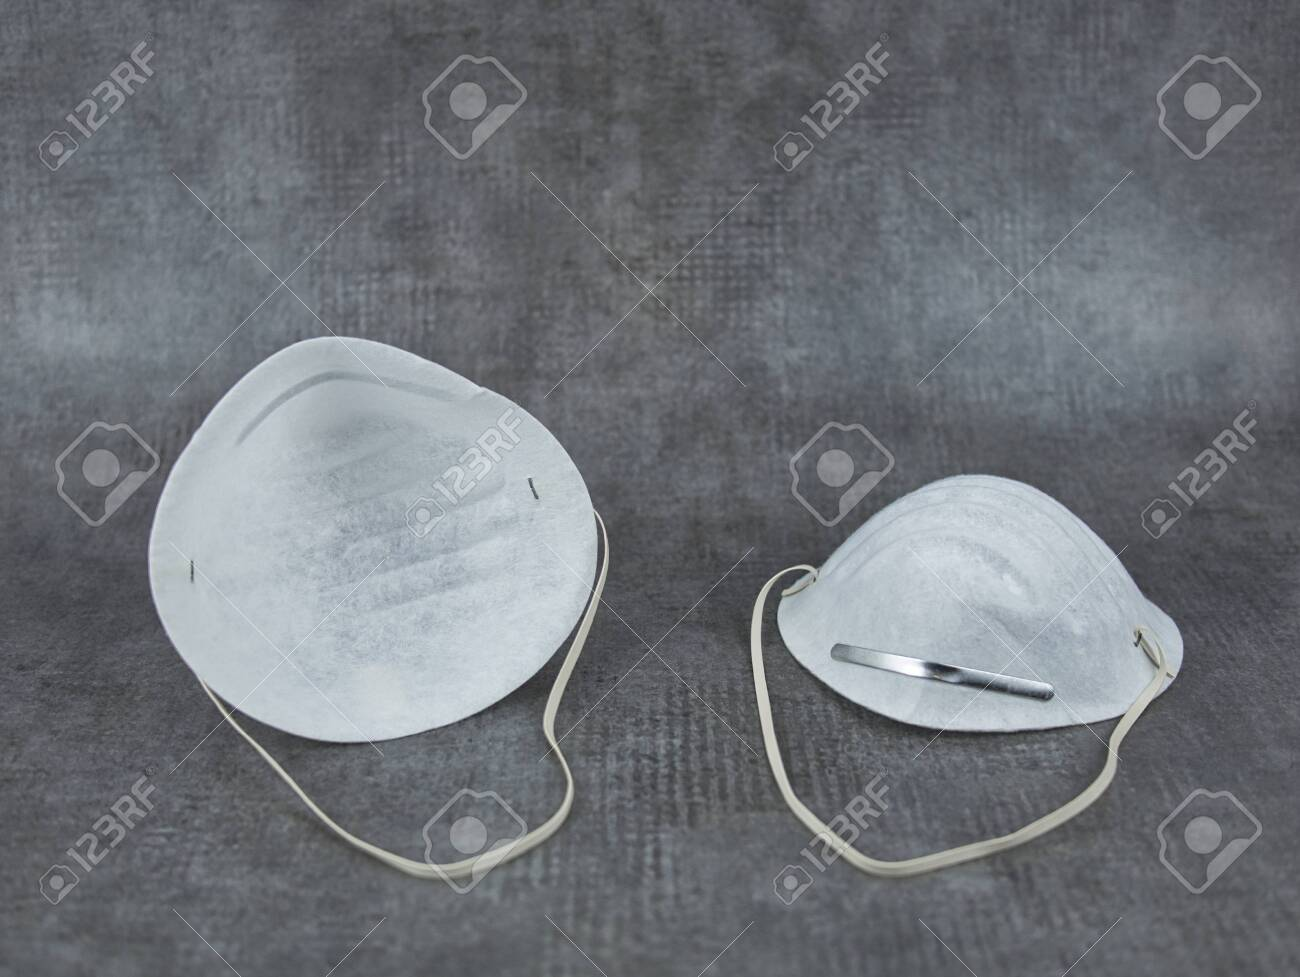 Two Face Masks With Metal Temples For The Nose And Elastic Bands